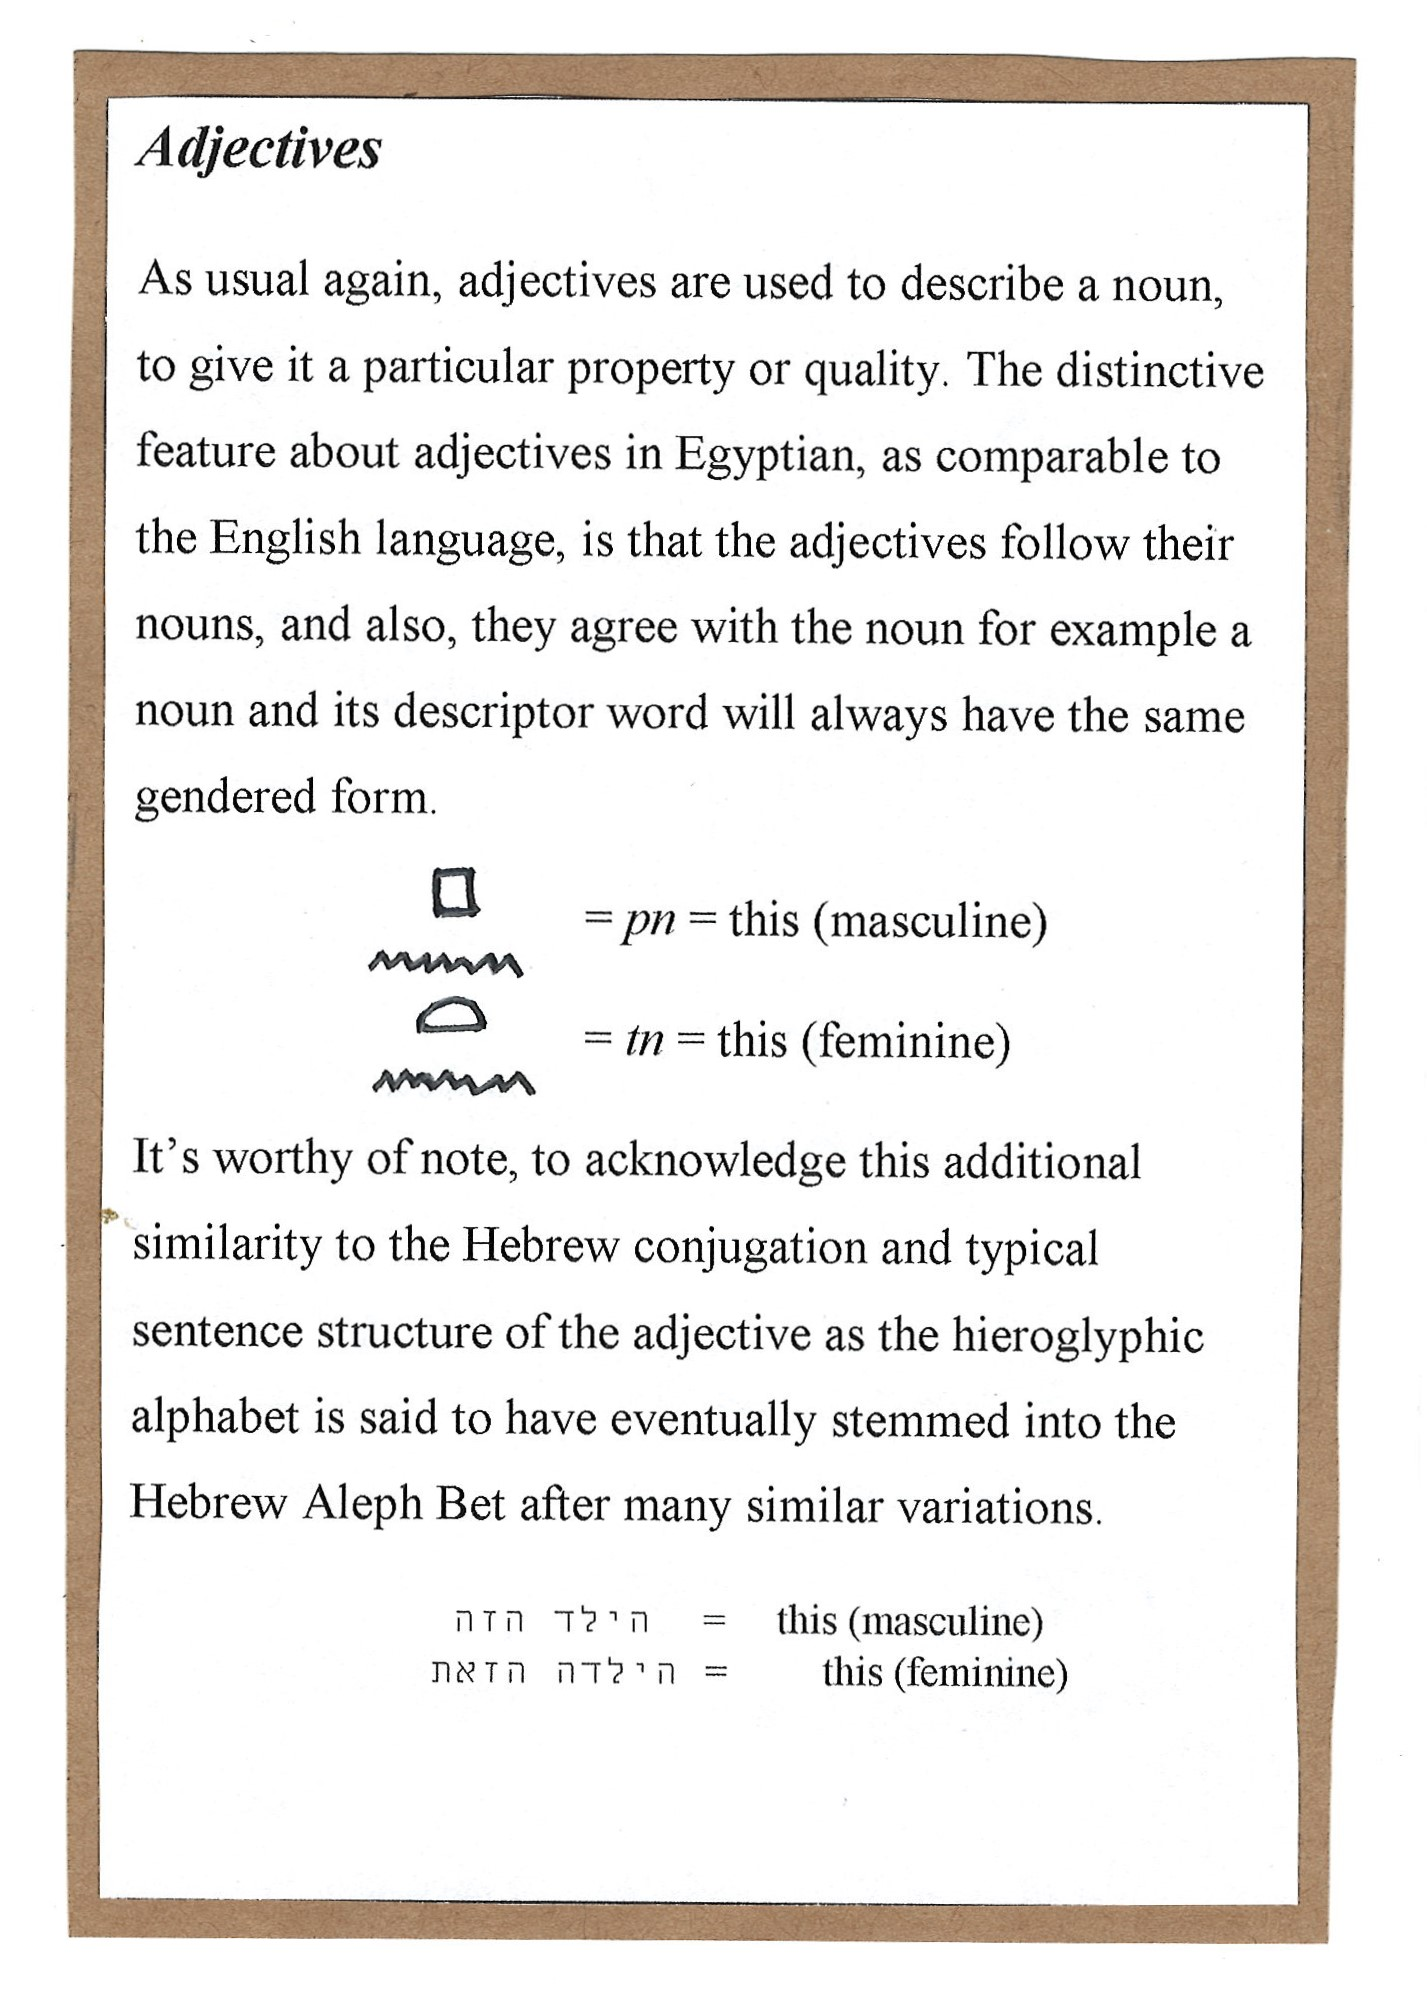 Page 11. Adjectives in Egyptian Hieroglyphs and how that may differ from our own understanding in the English language.